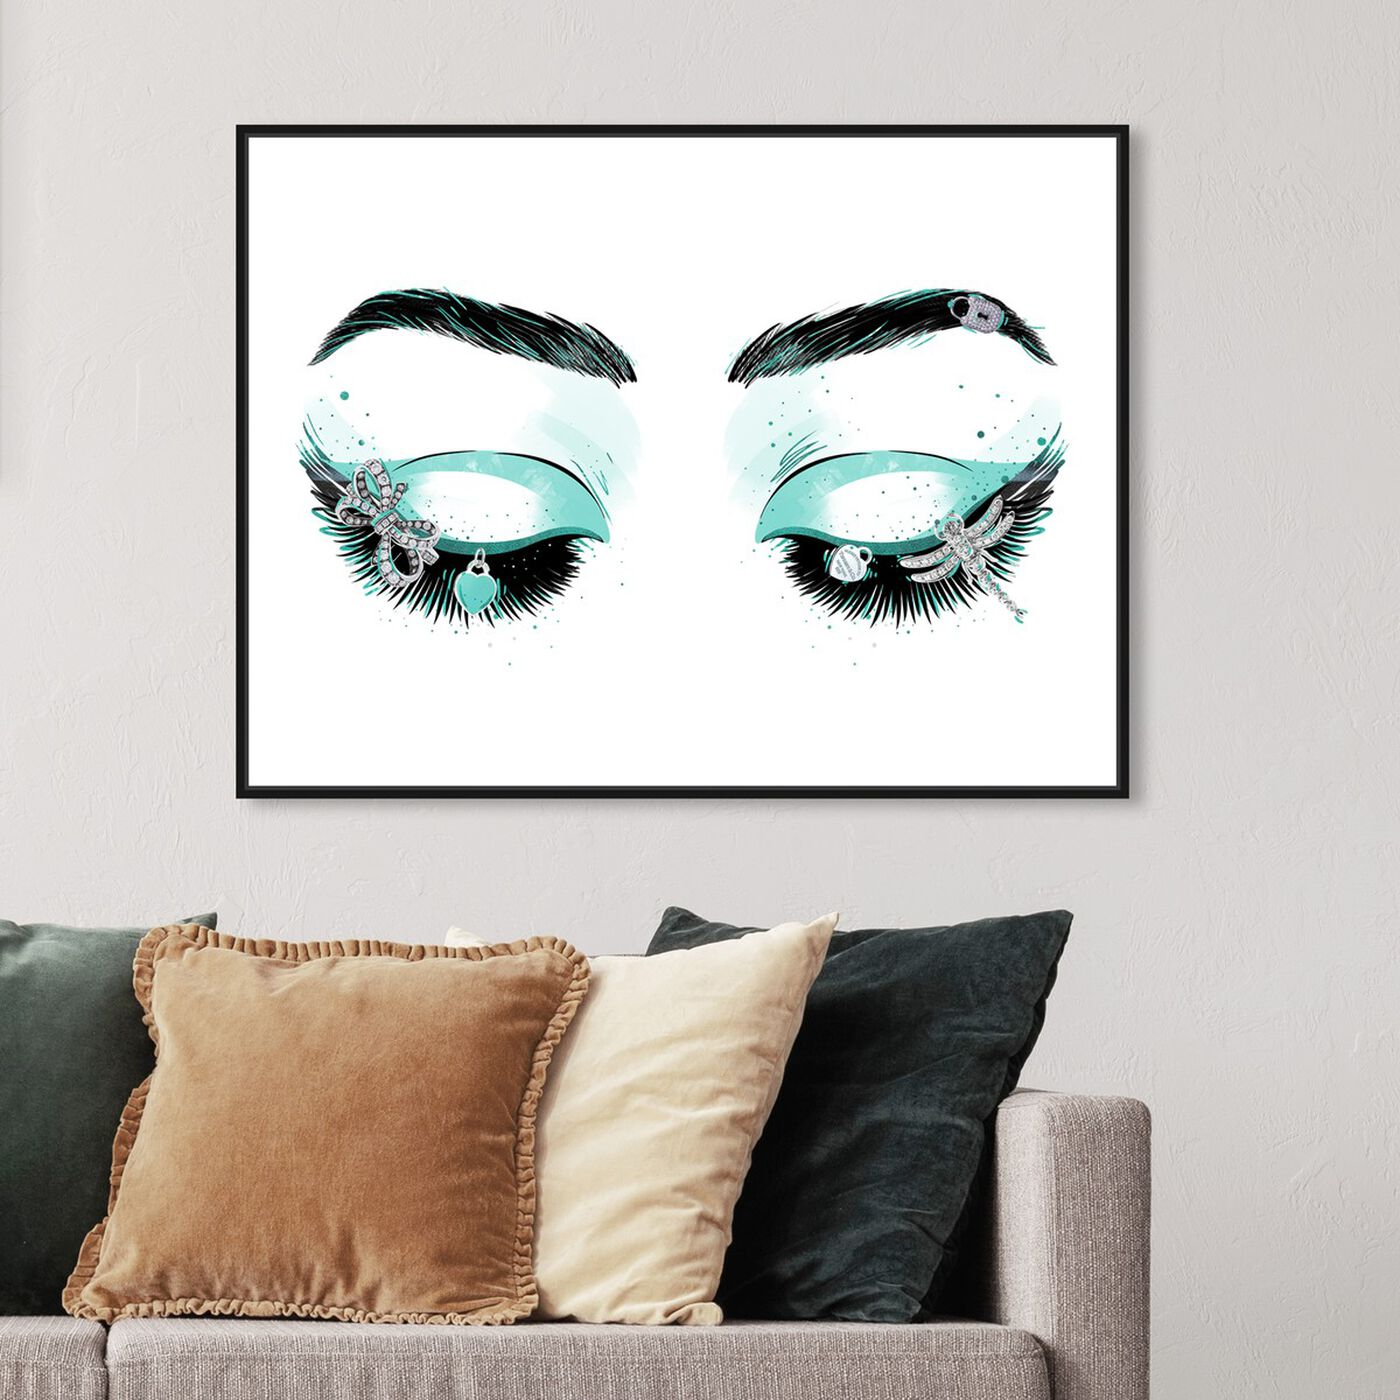 Hanging view of Aqua Glam Eyeshadows featuring fashion and glam and makeup art.